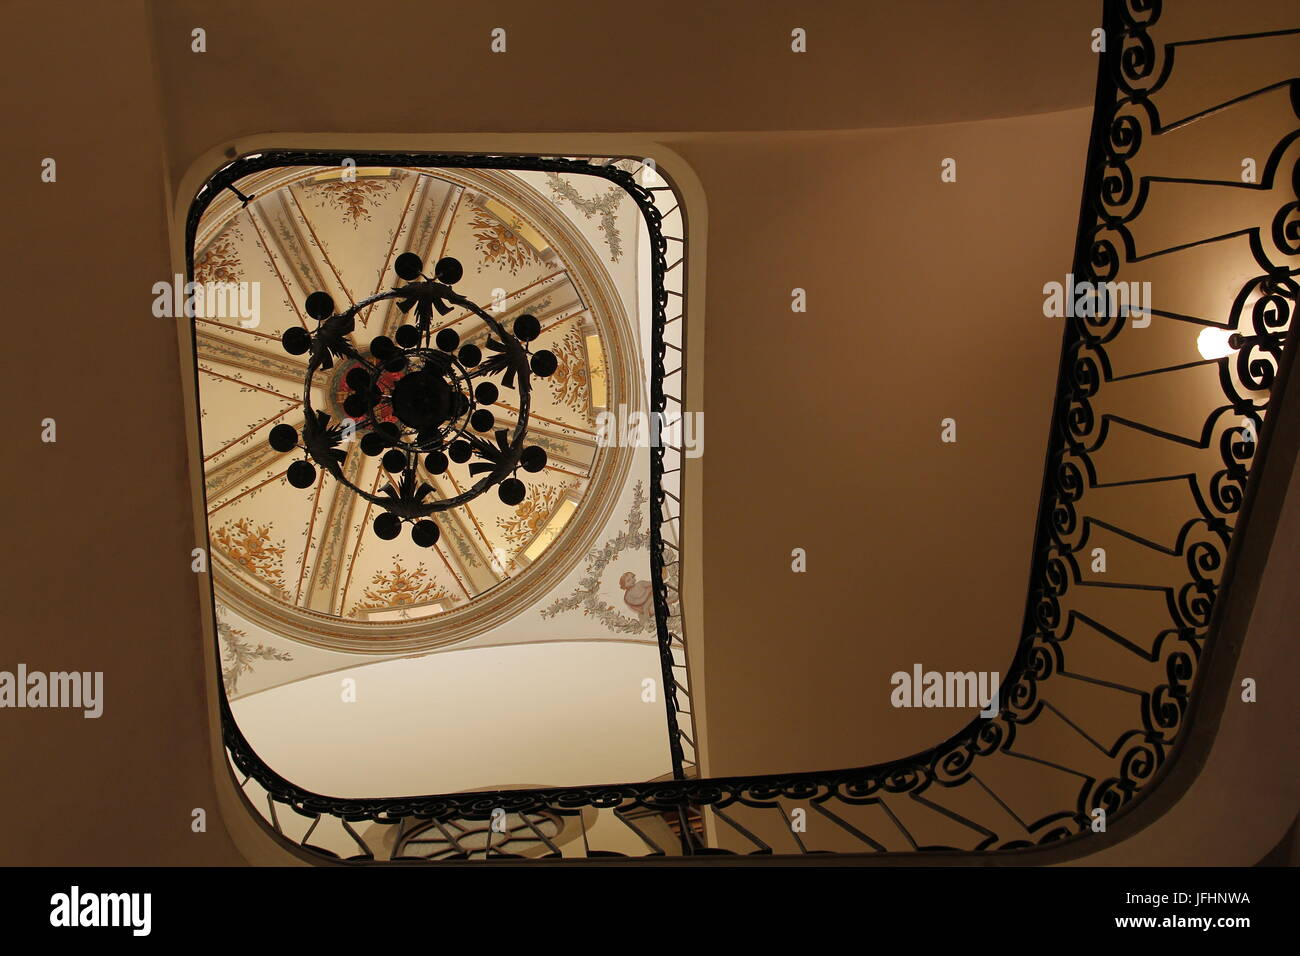 Staircase eye interior architecture Stock Photo